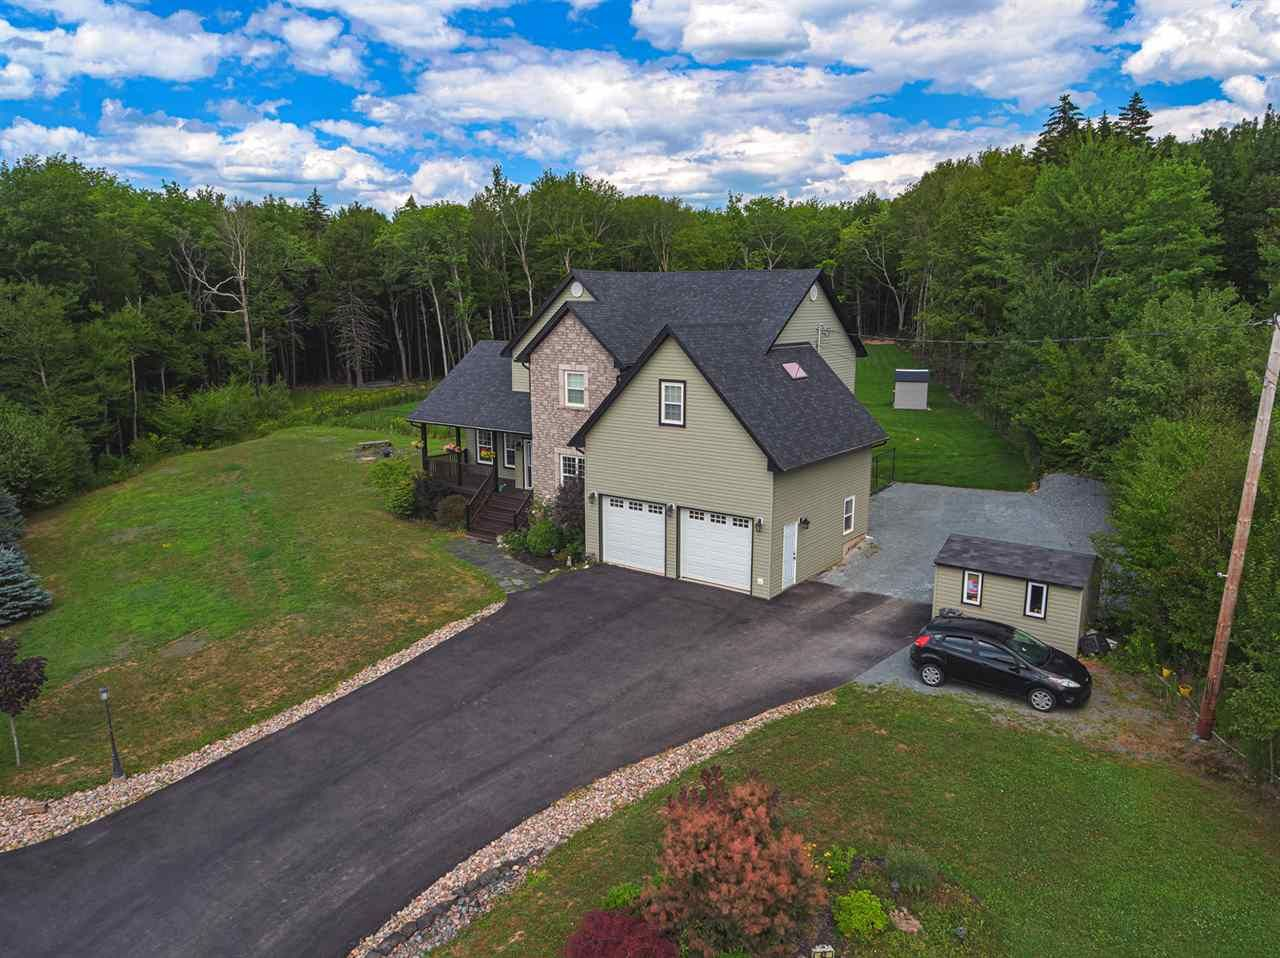 Main Photo: 42 PETER THOMAS Drive in Windsor Junction: 30-Waverley, Fall River, Oakfield Residential for sale (Halifax-Dartmouth)  : MLS®# 201920586